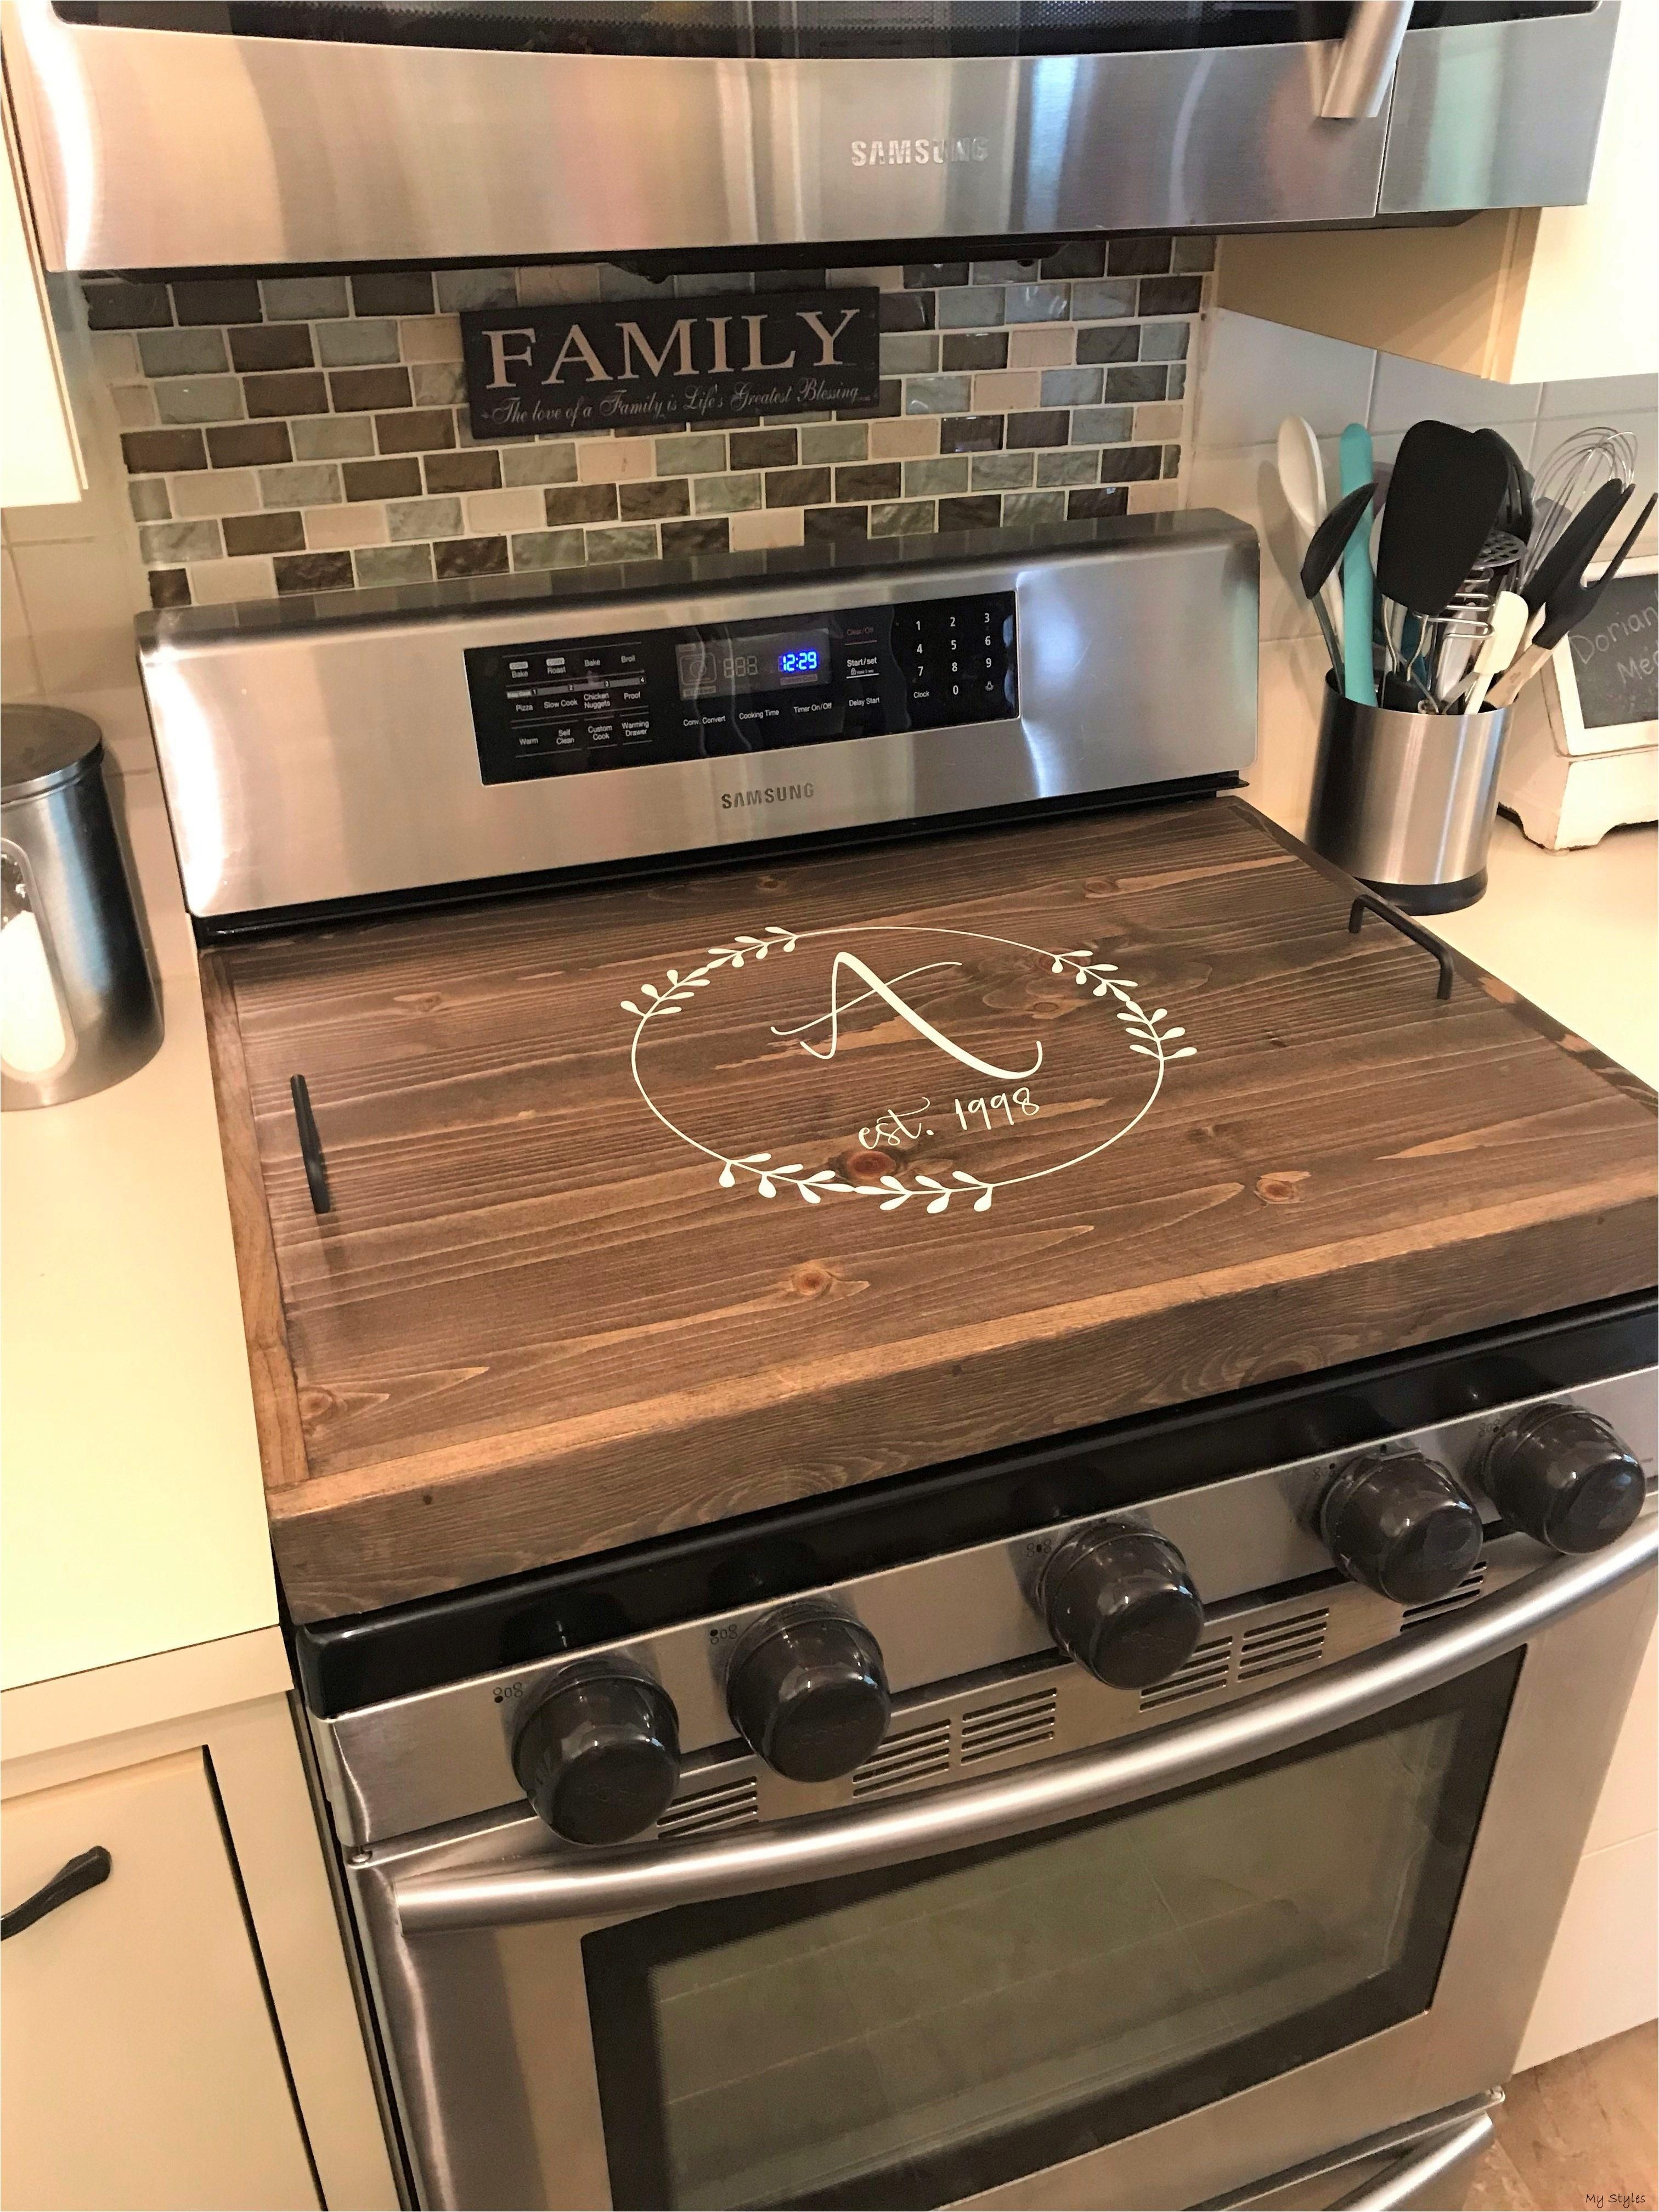 Jun 8 2020 This Pin Was Discovered By Kayla Super Discover And Save Your Own Pins On Pinterest In 2020 Diy Kitchen Renovation Kitchen Design Diy Diy Kitchen